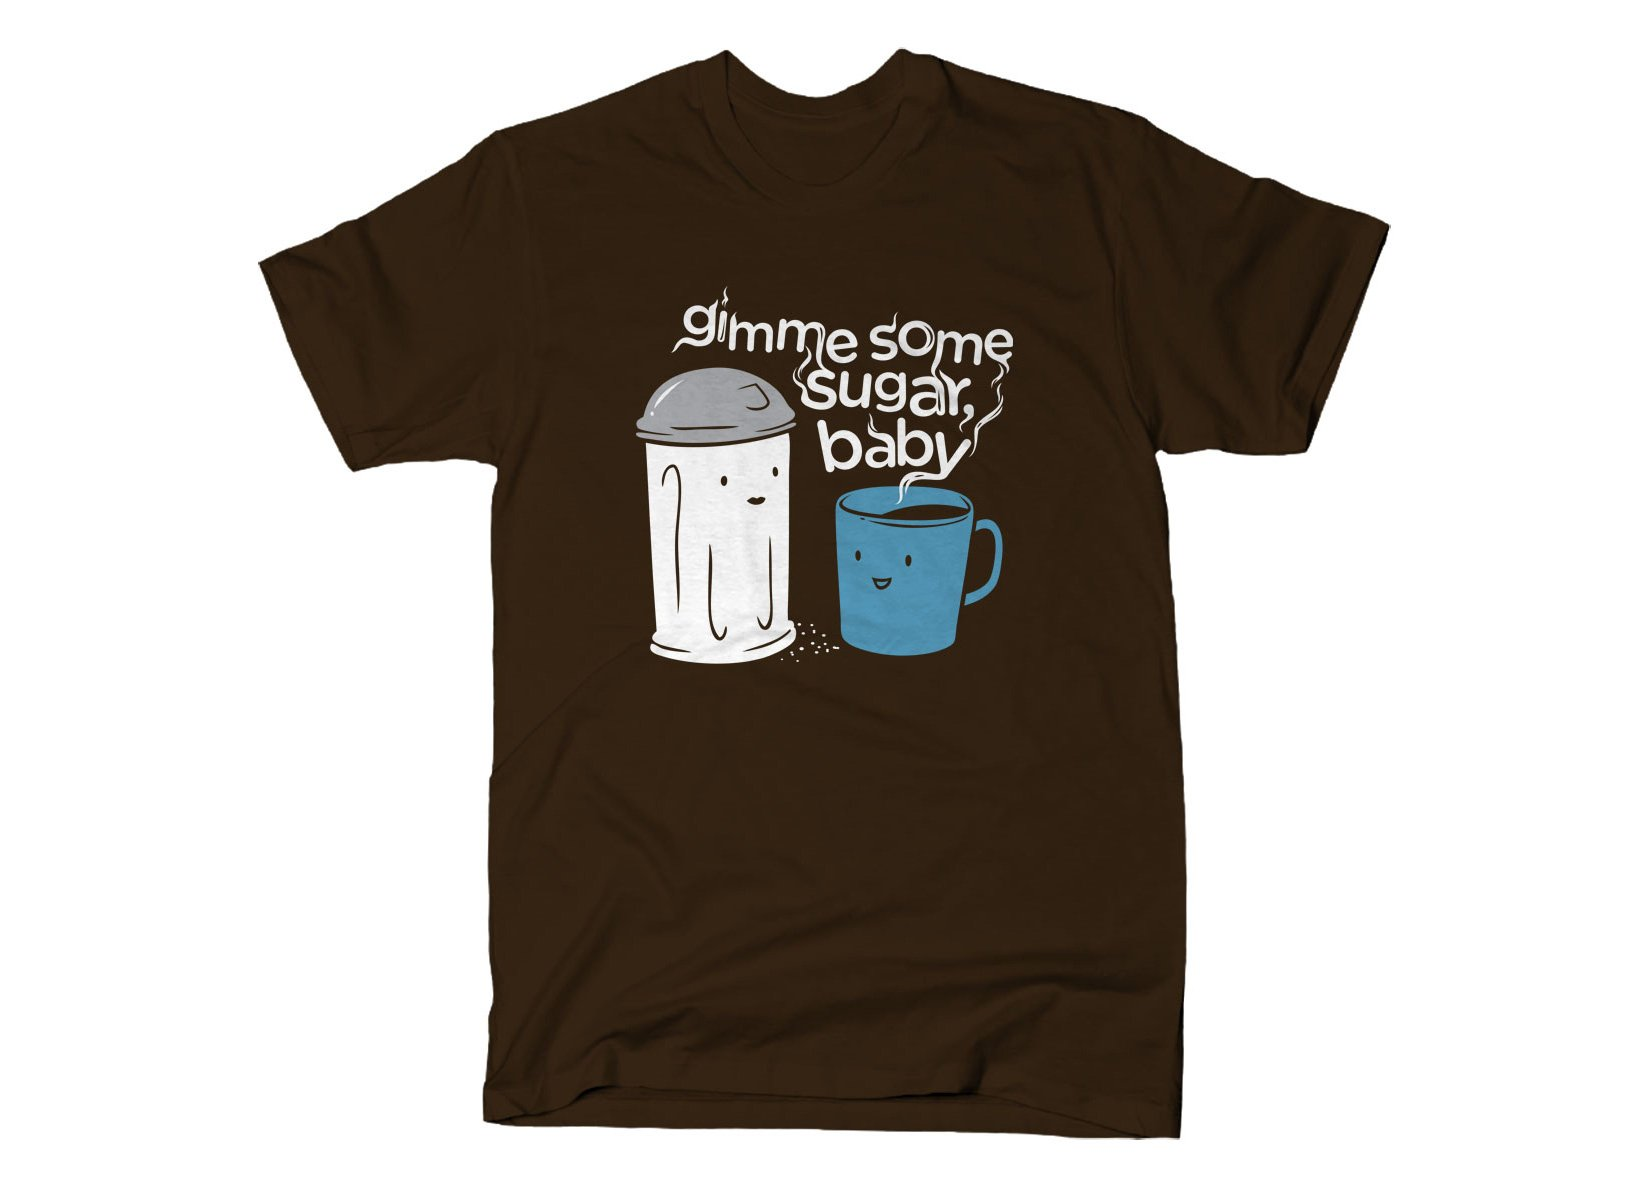 Gimme Some Sugar, Baby on Mens T-Shirt